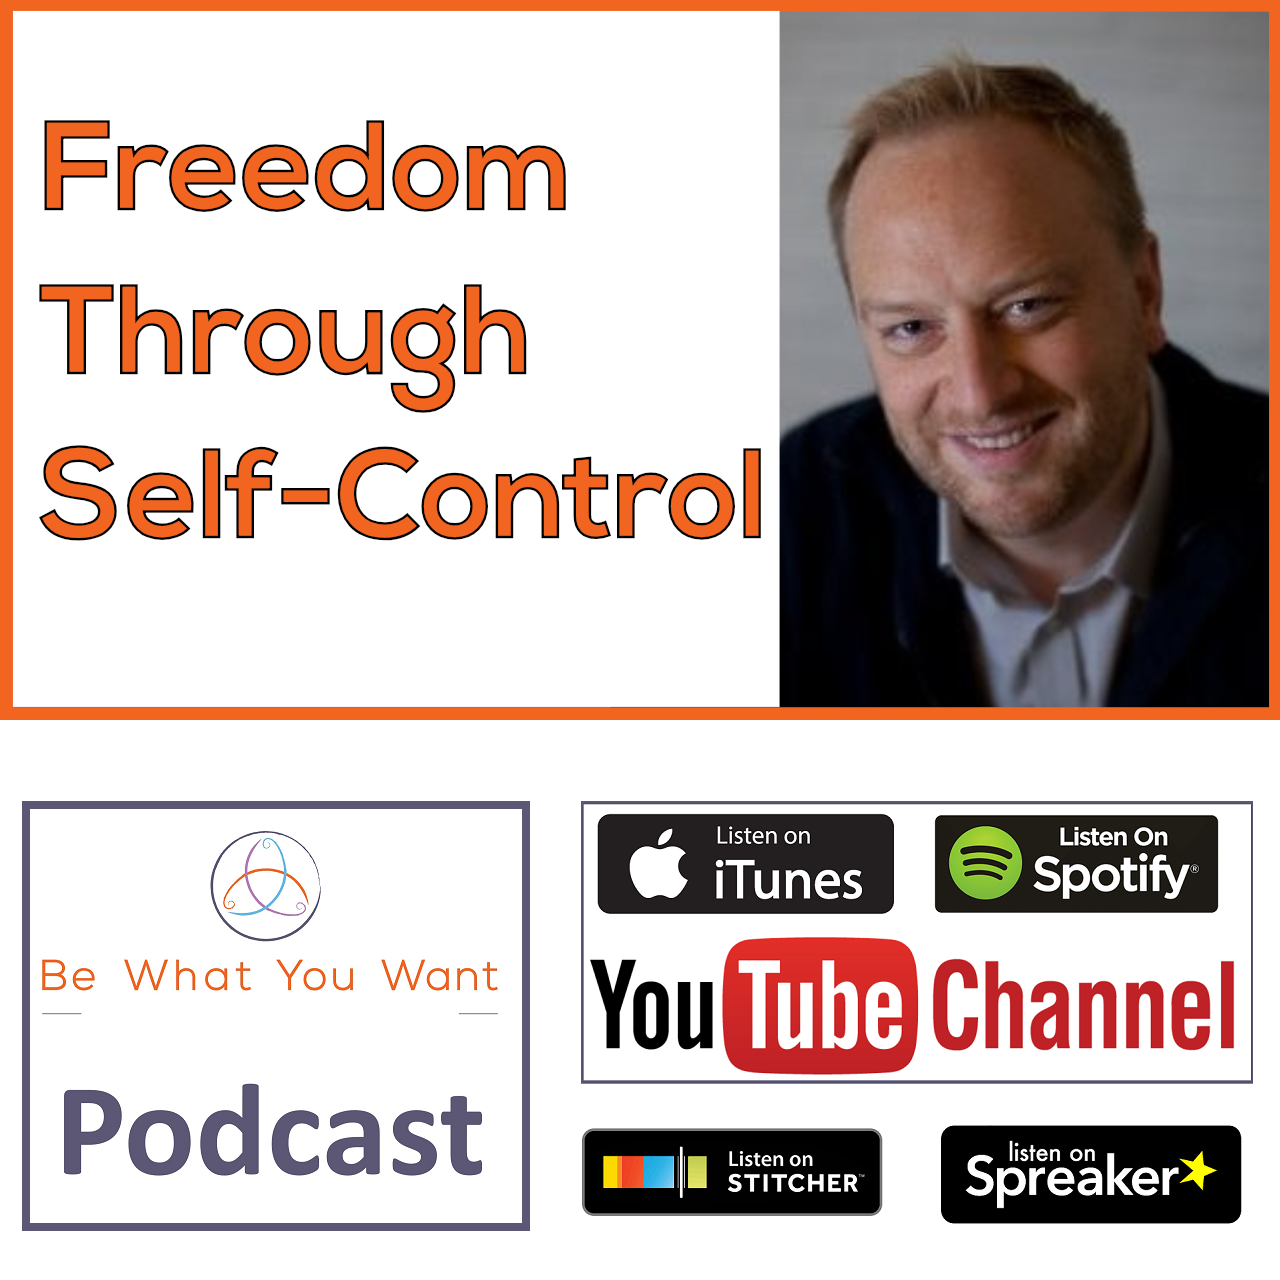 Freedom Through Self-Control - with Drew Dyck